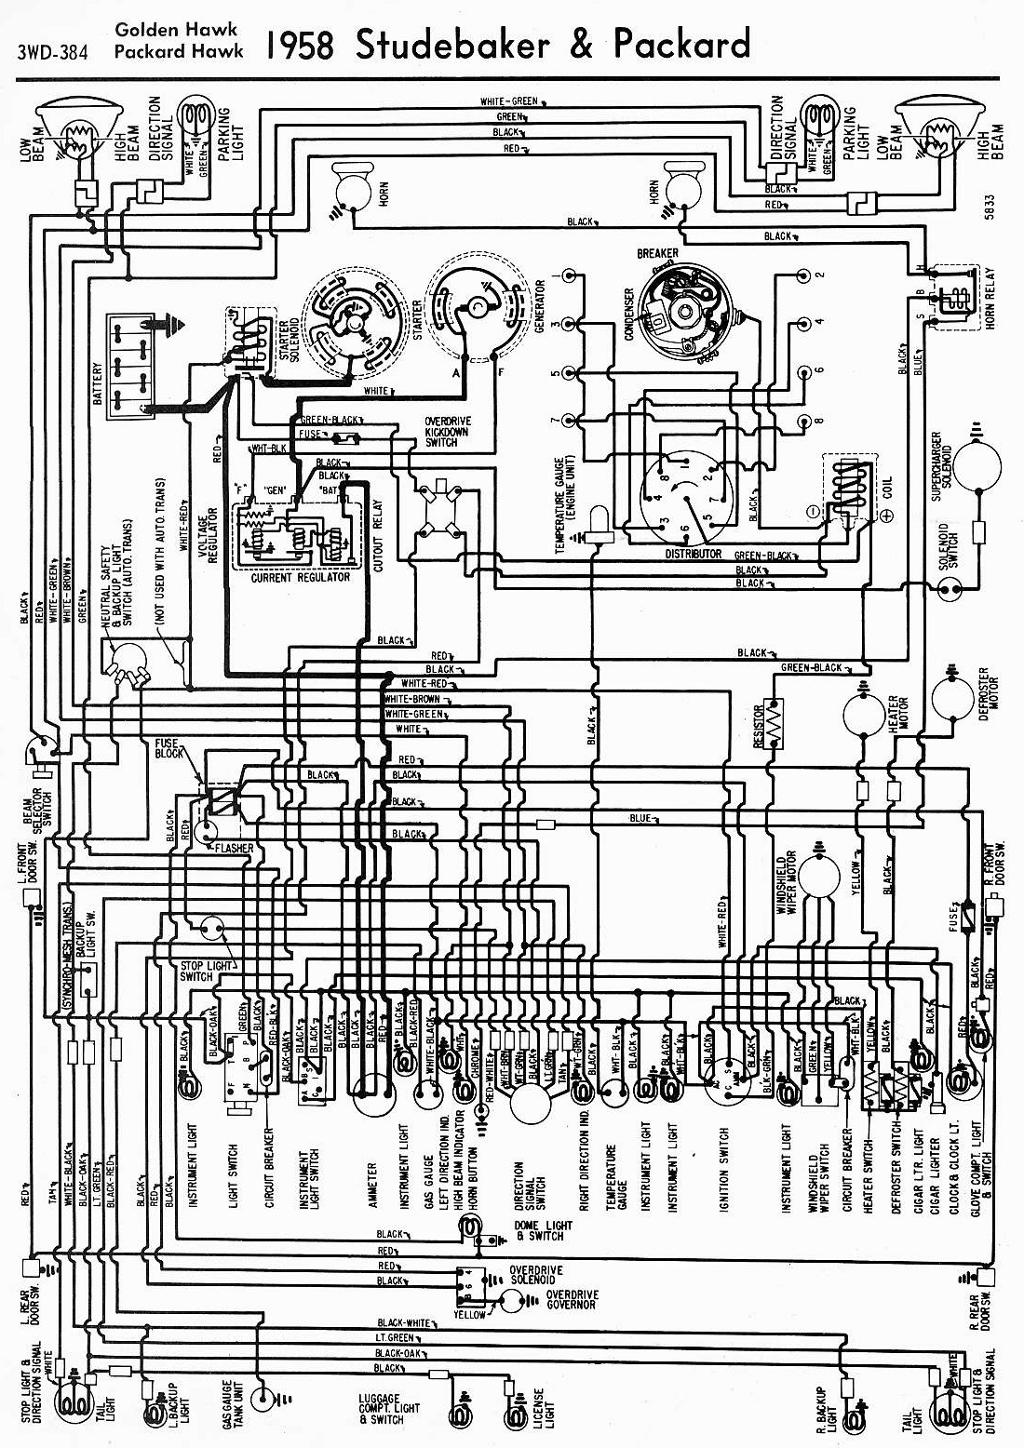 small resolution of 1948 packard wiring diagram wiring diagram third level 1949 ford wiring diagram 1948 studebaker wiring diagram